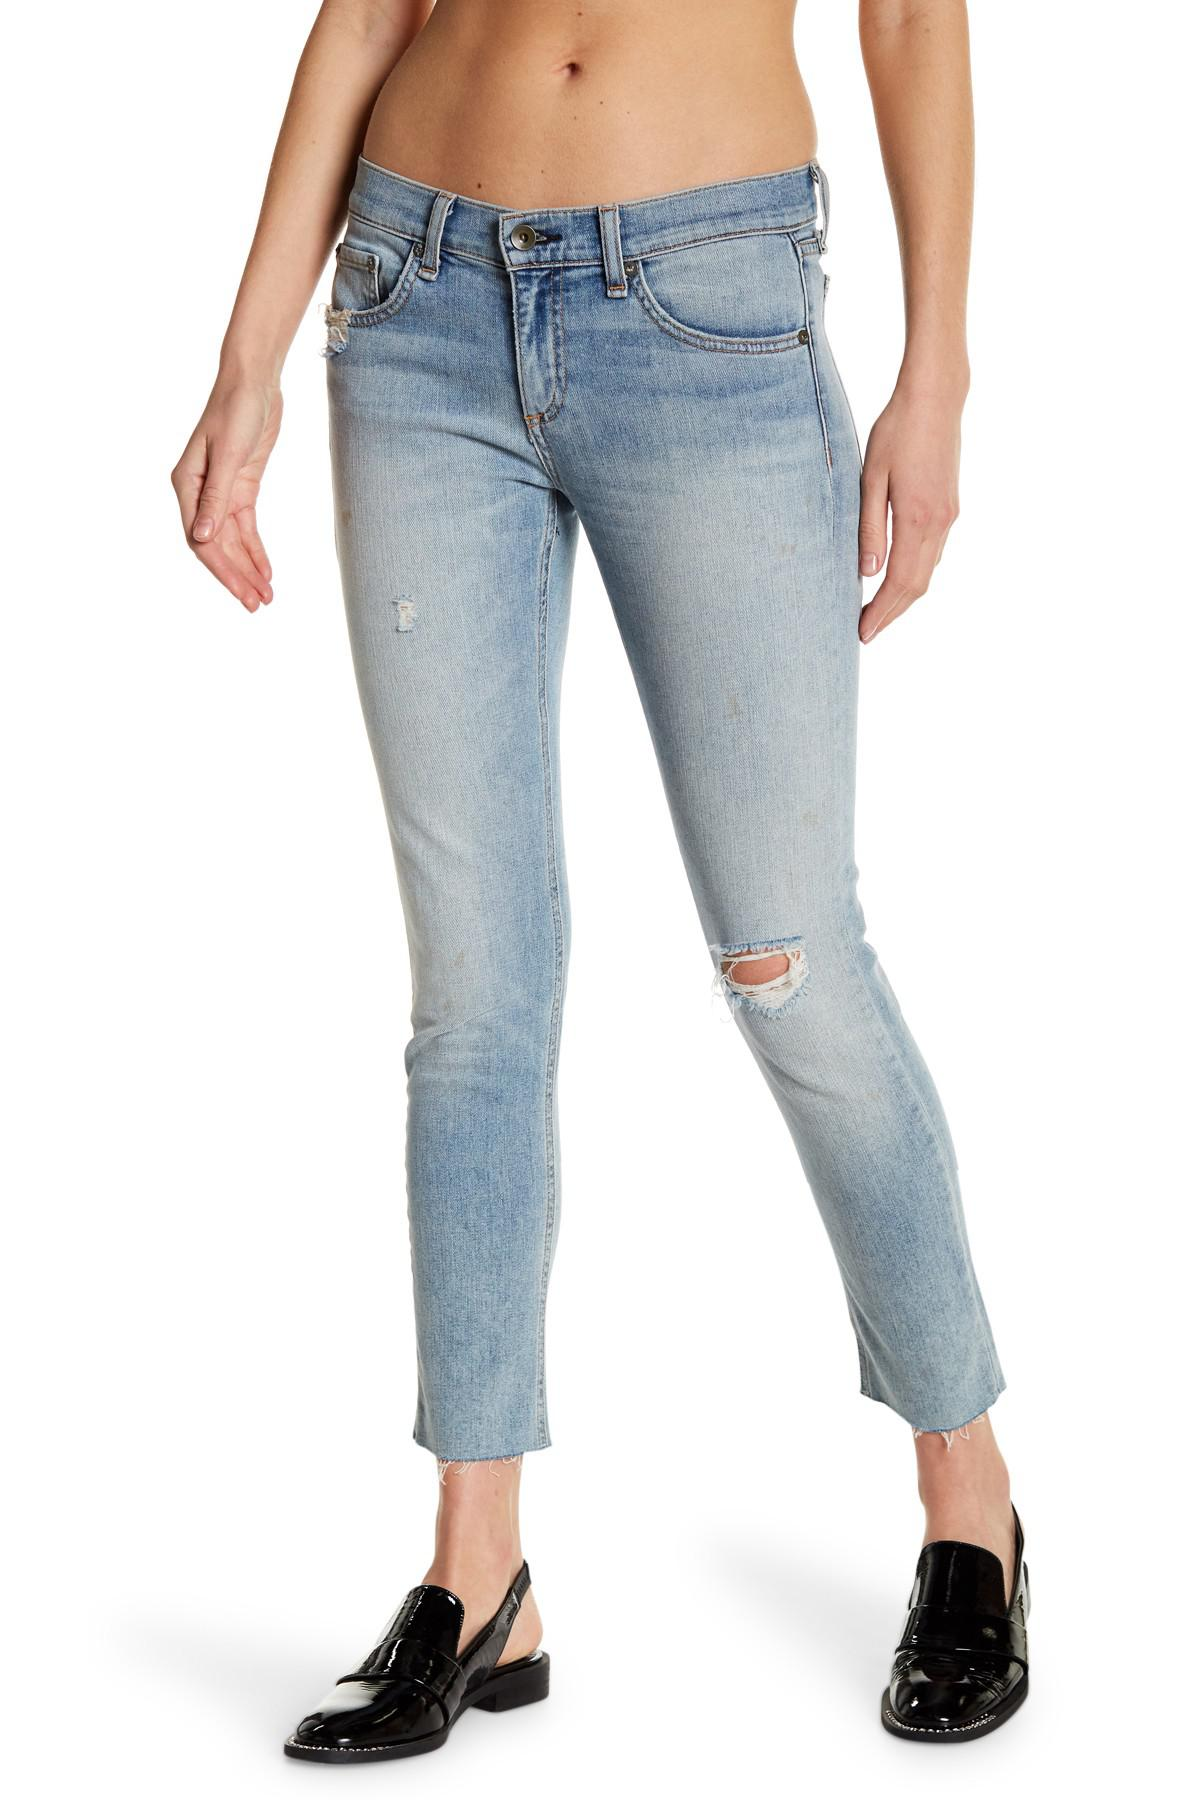 dc08e3cc Lyst - Rag & Bone Dre Raw Hem Jeans in Blue